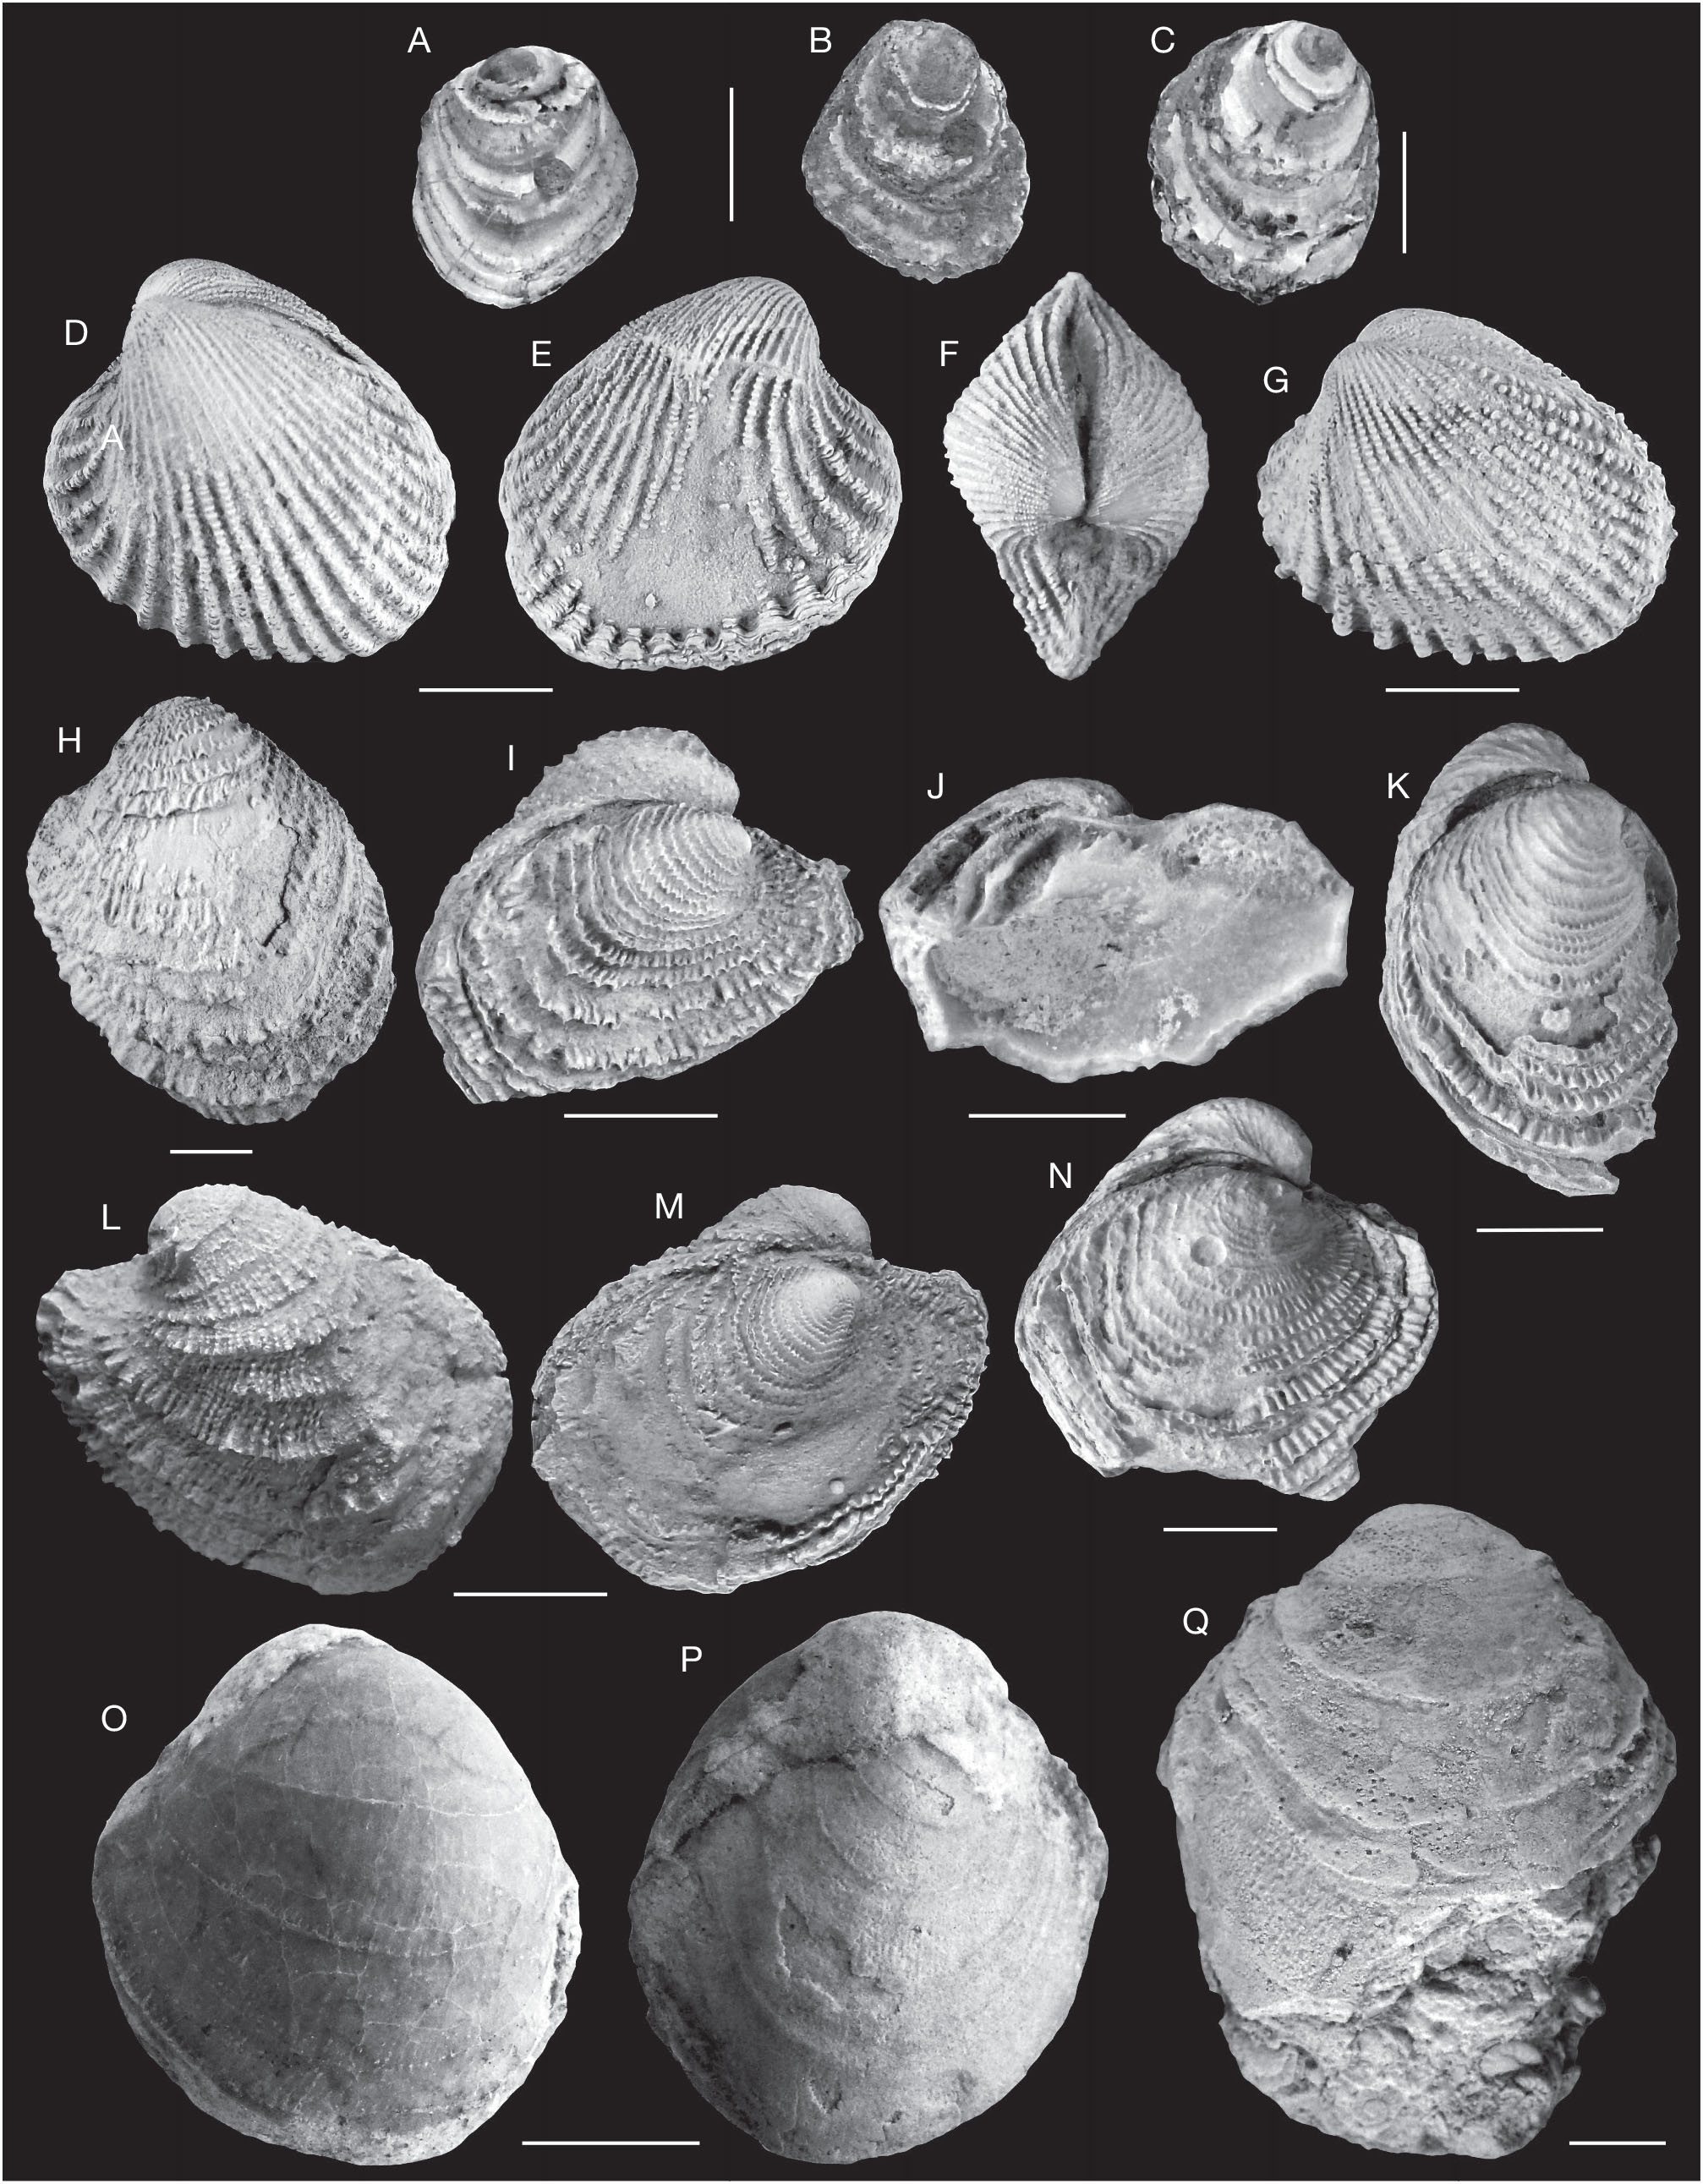 Gastropods and bivalves from the Eocene marly formations of